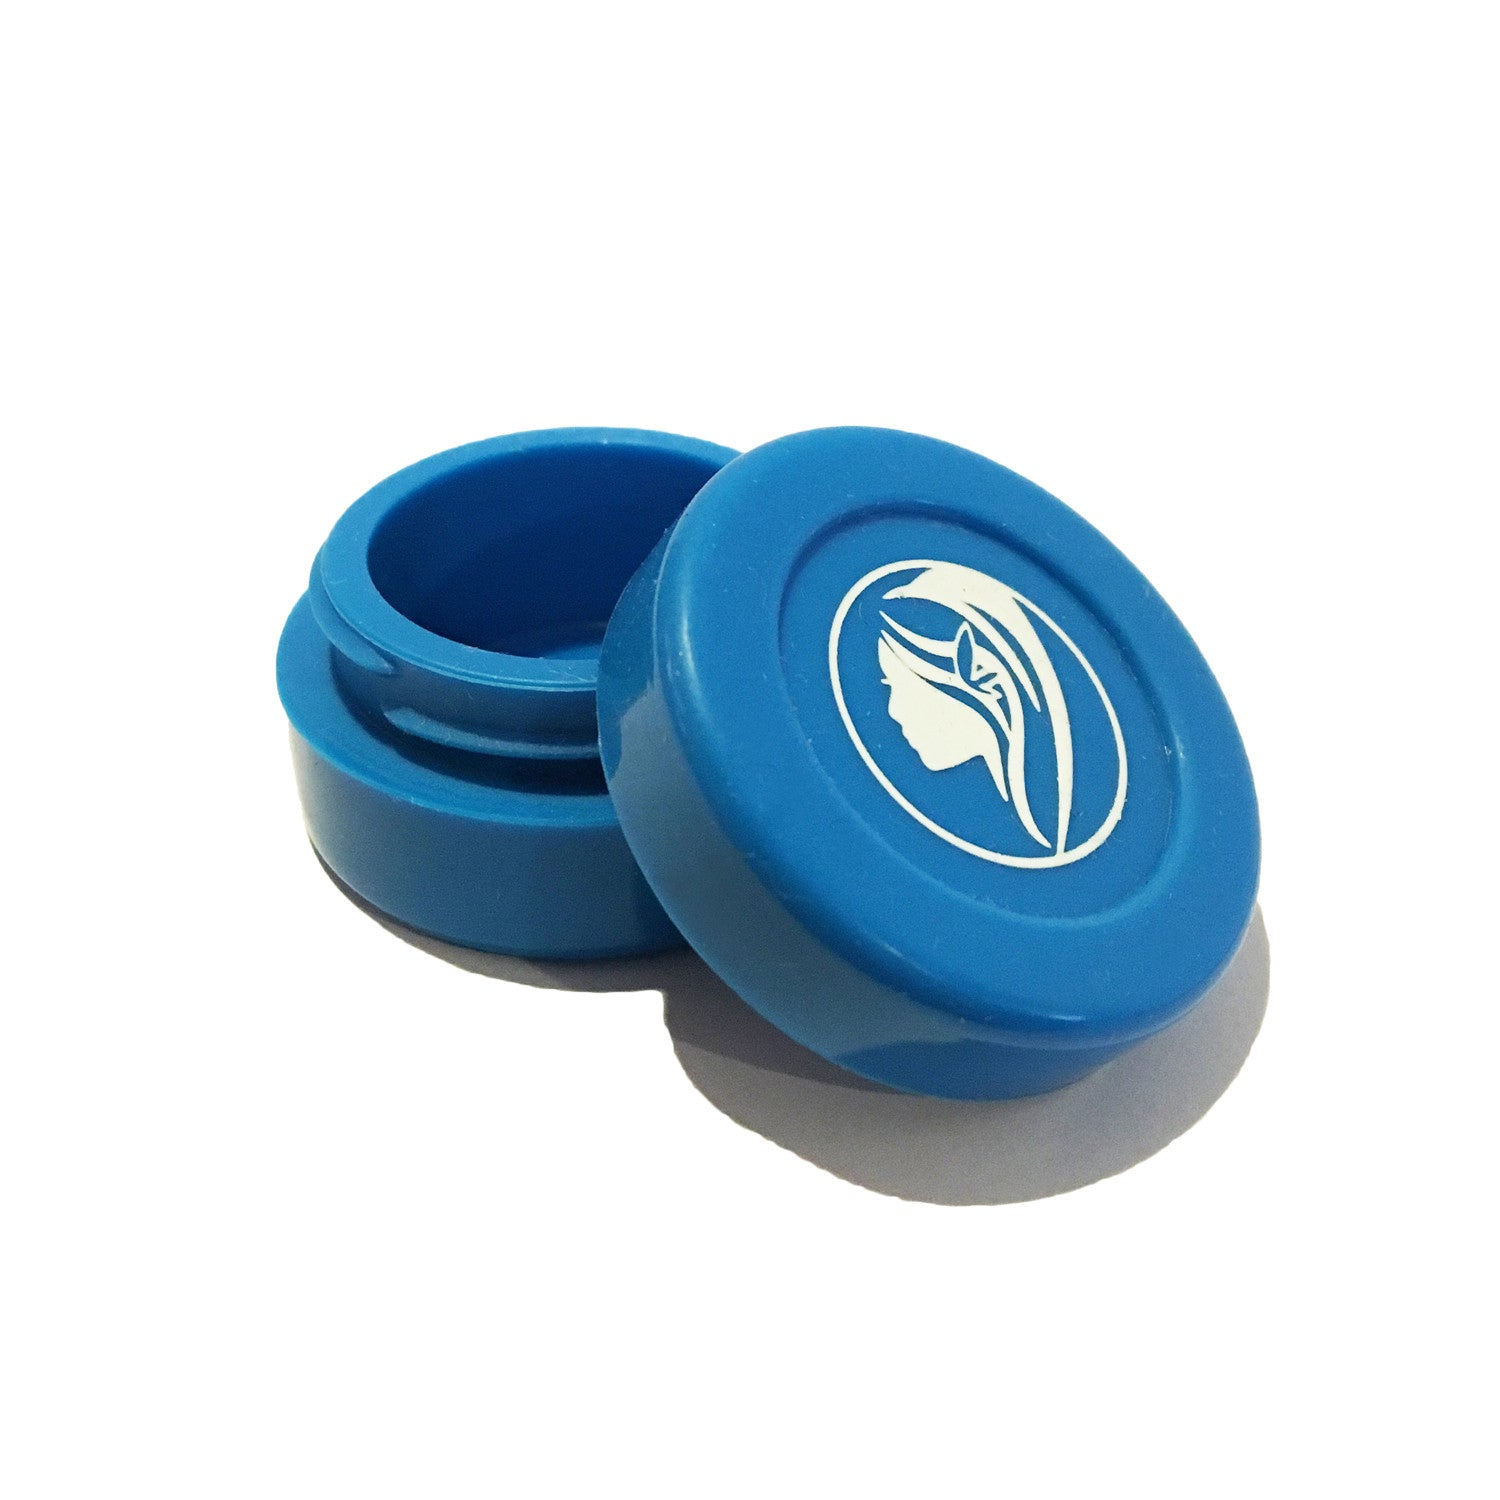 Non-Stick Silicone Wax Jar - Blue - Green Goddess Supply